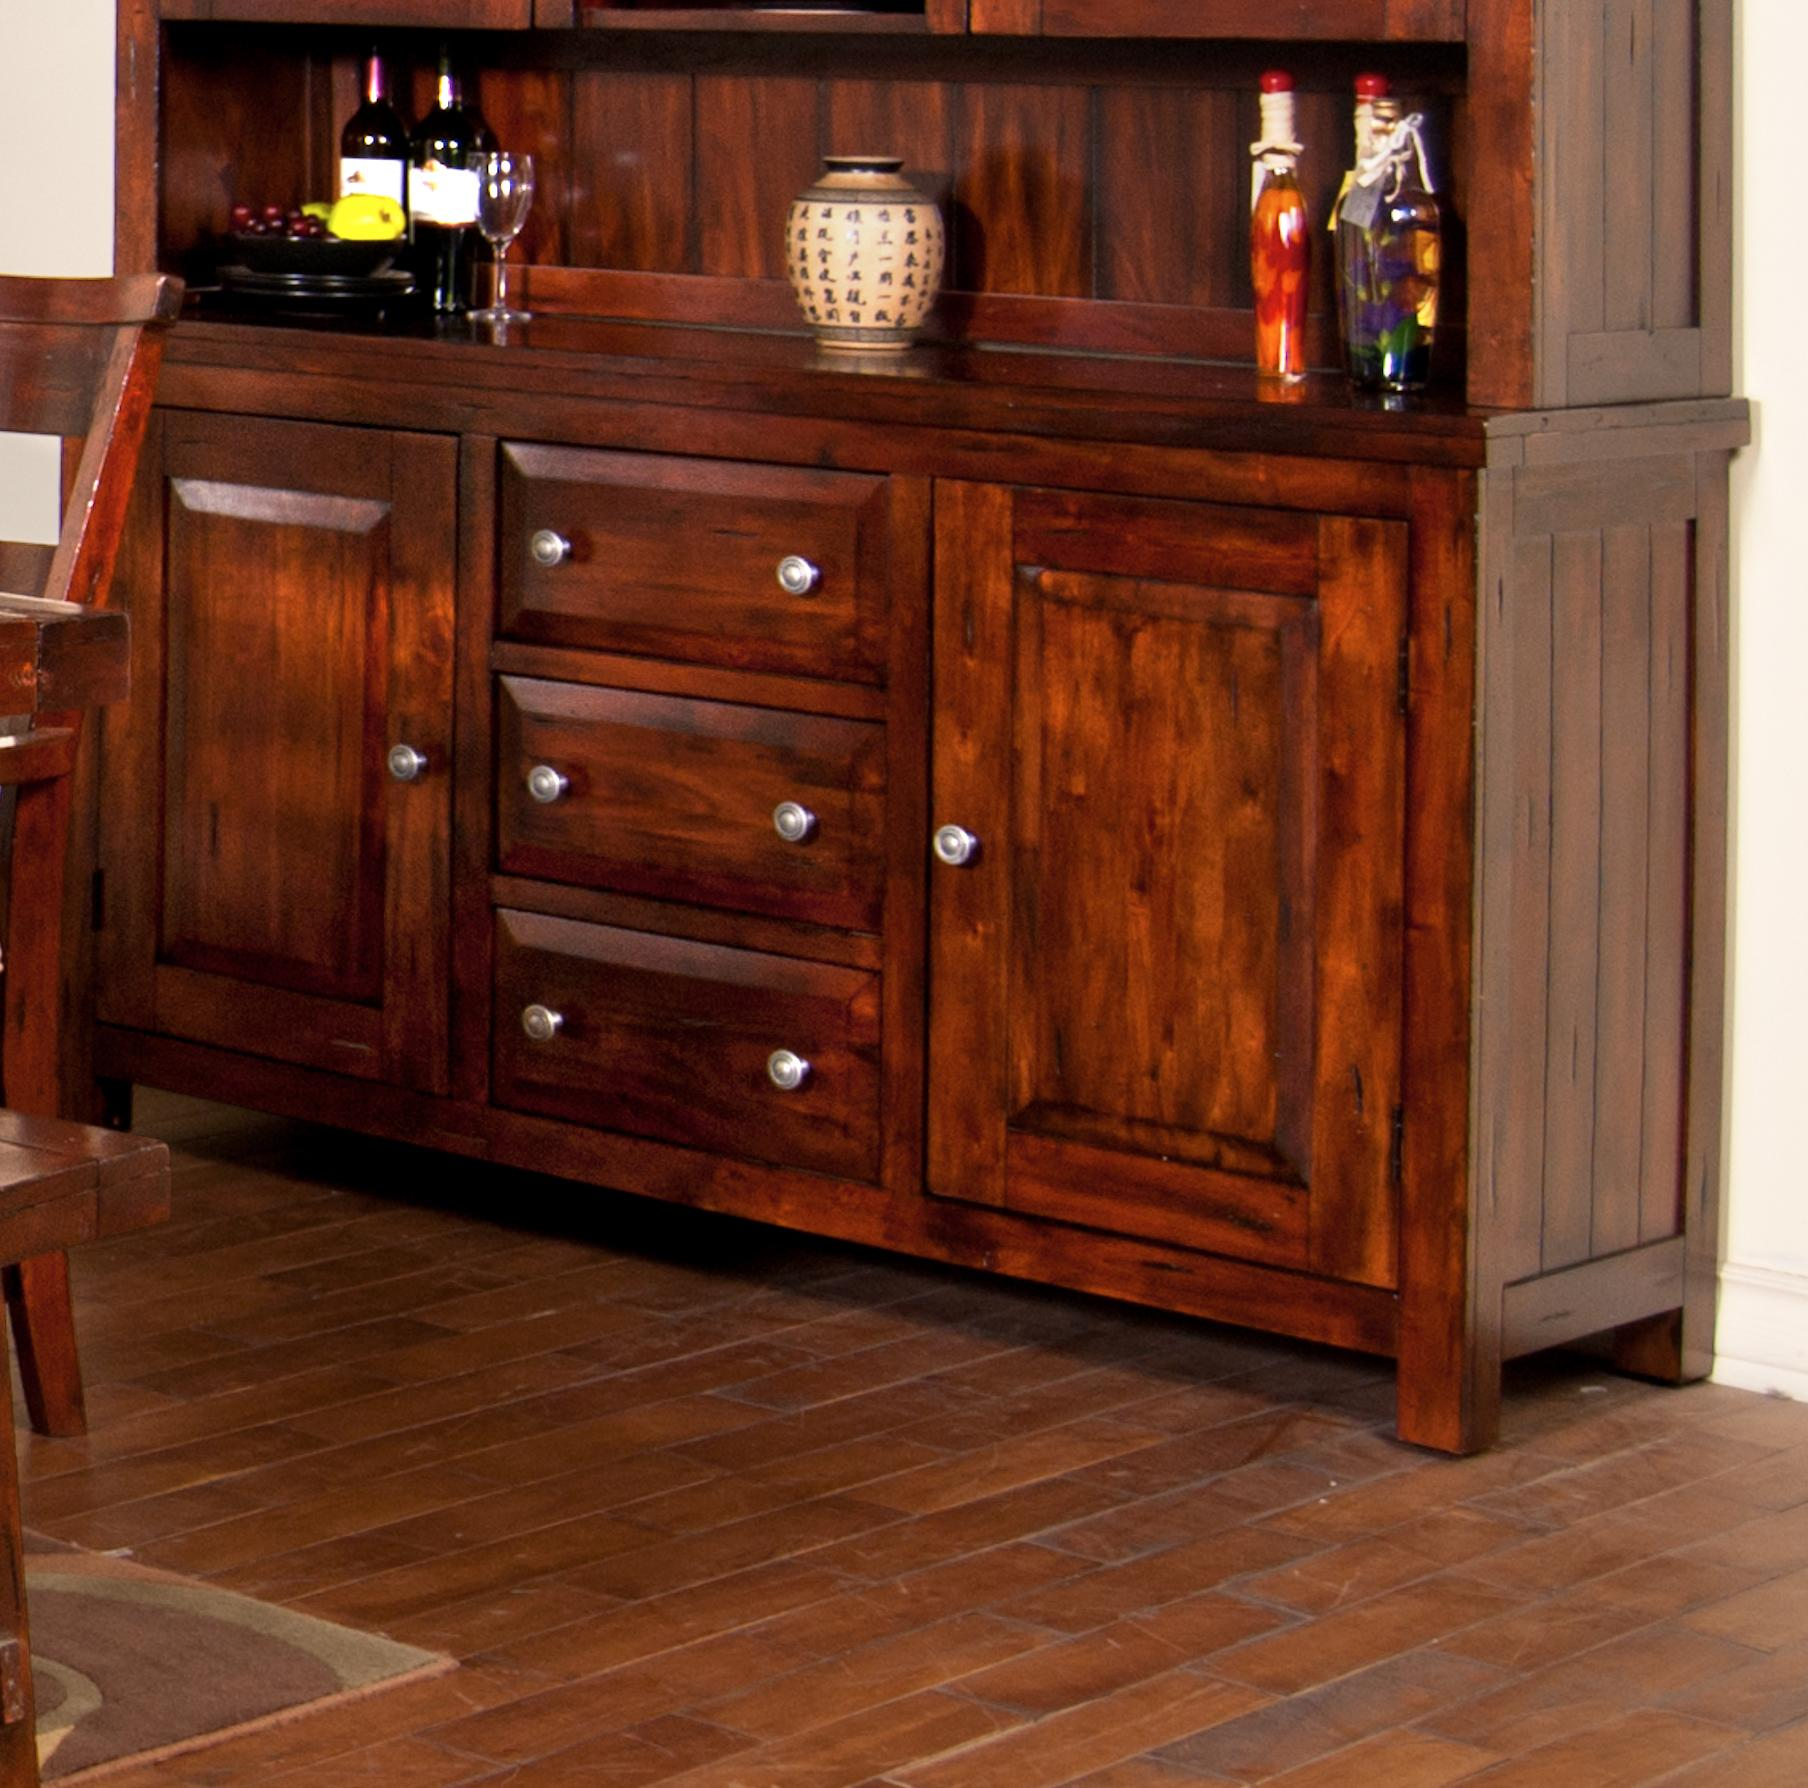 Sunny Designs Vineyard Mahogany Buffet Furniture Mart  : products2Fsunnydesigns2Fcolor2Fvineyard20rm2428rm b b from www.furnituremartco.com size 1808 x 1788 jpeg 305kB